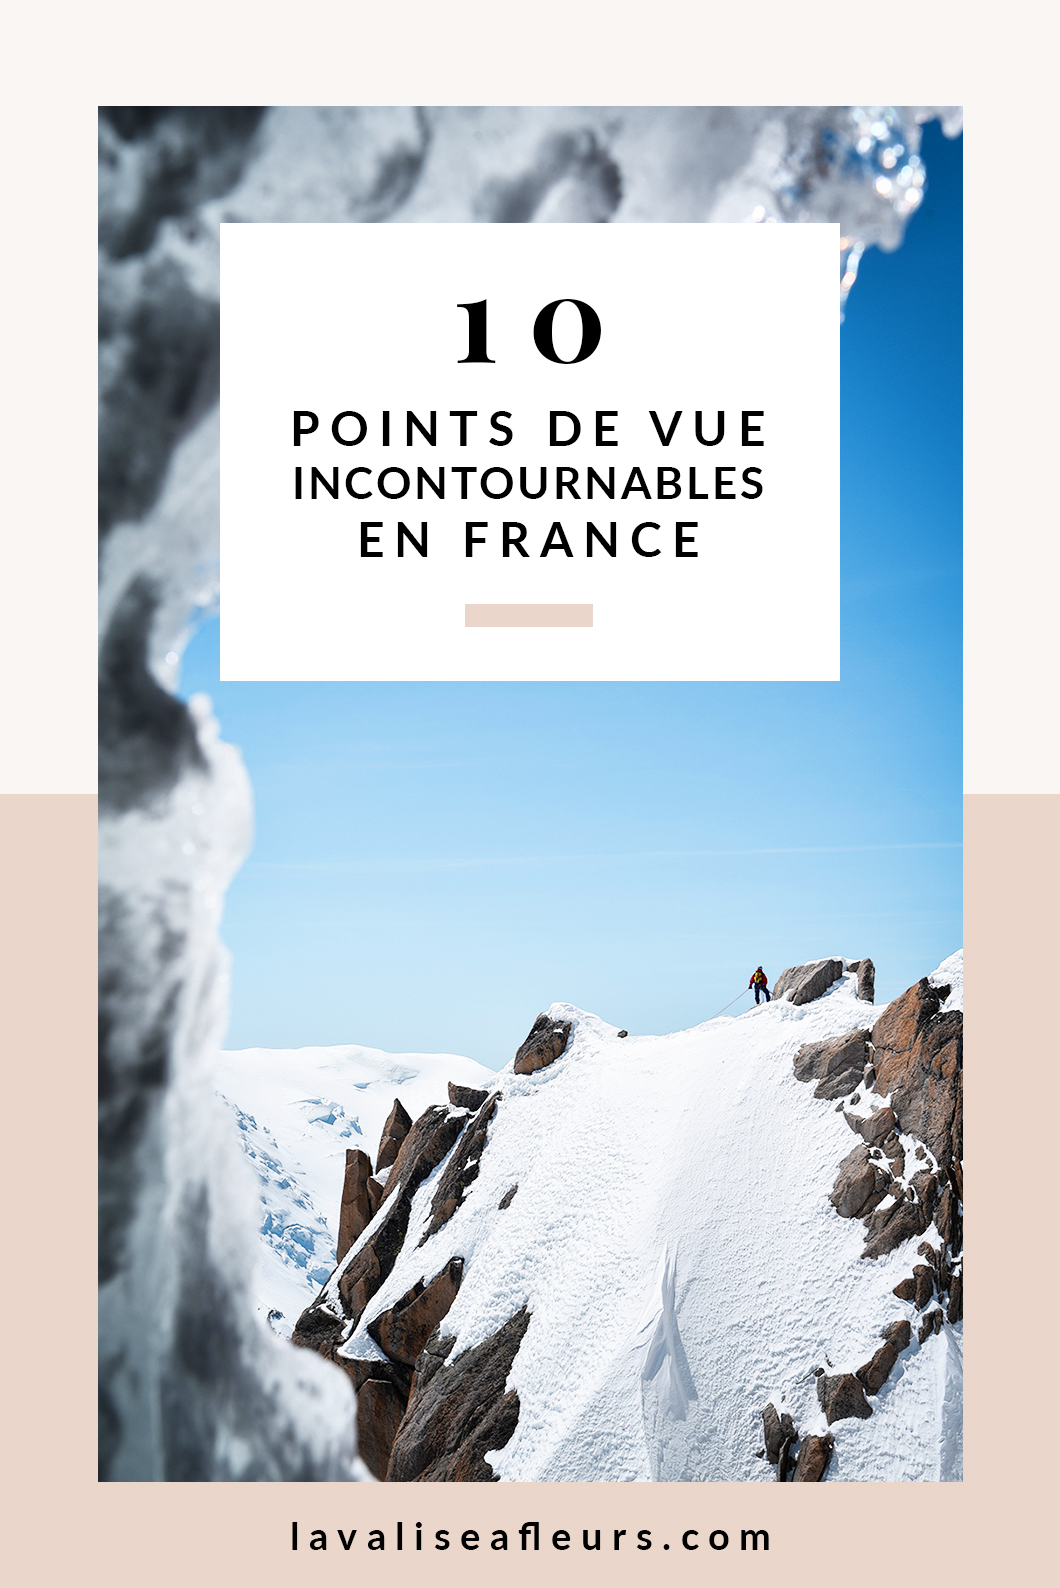 10 points de vue incontournables en France